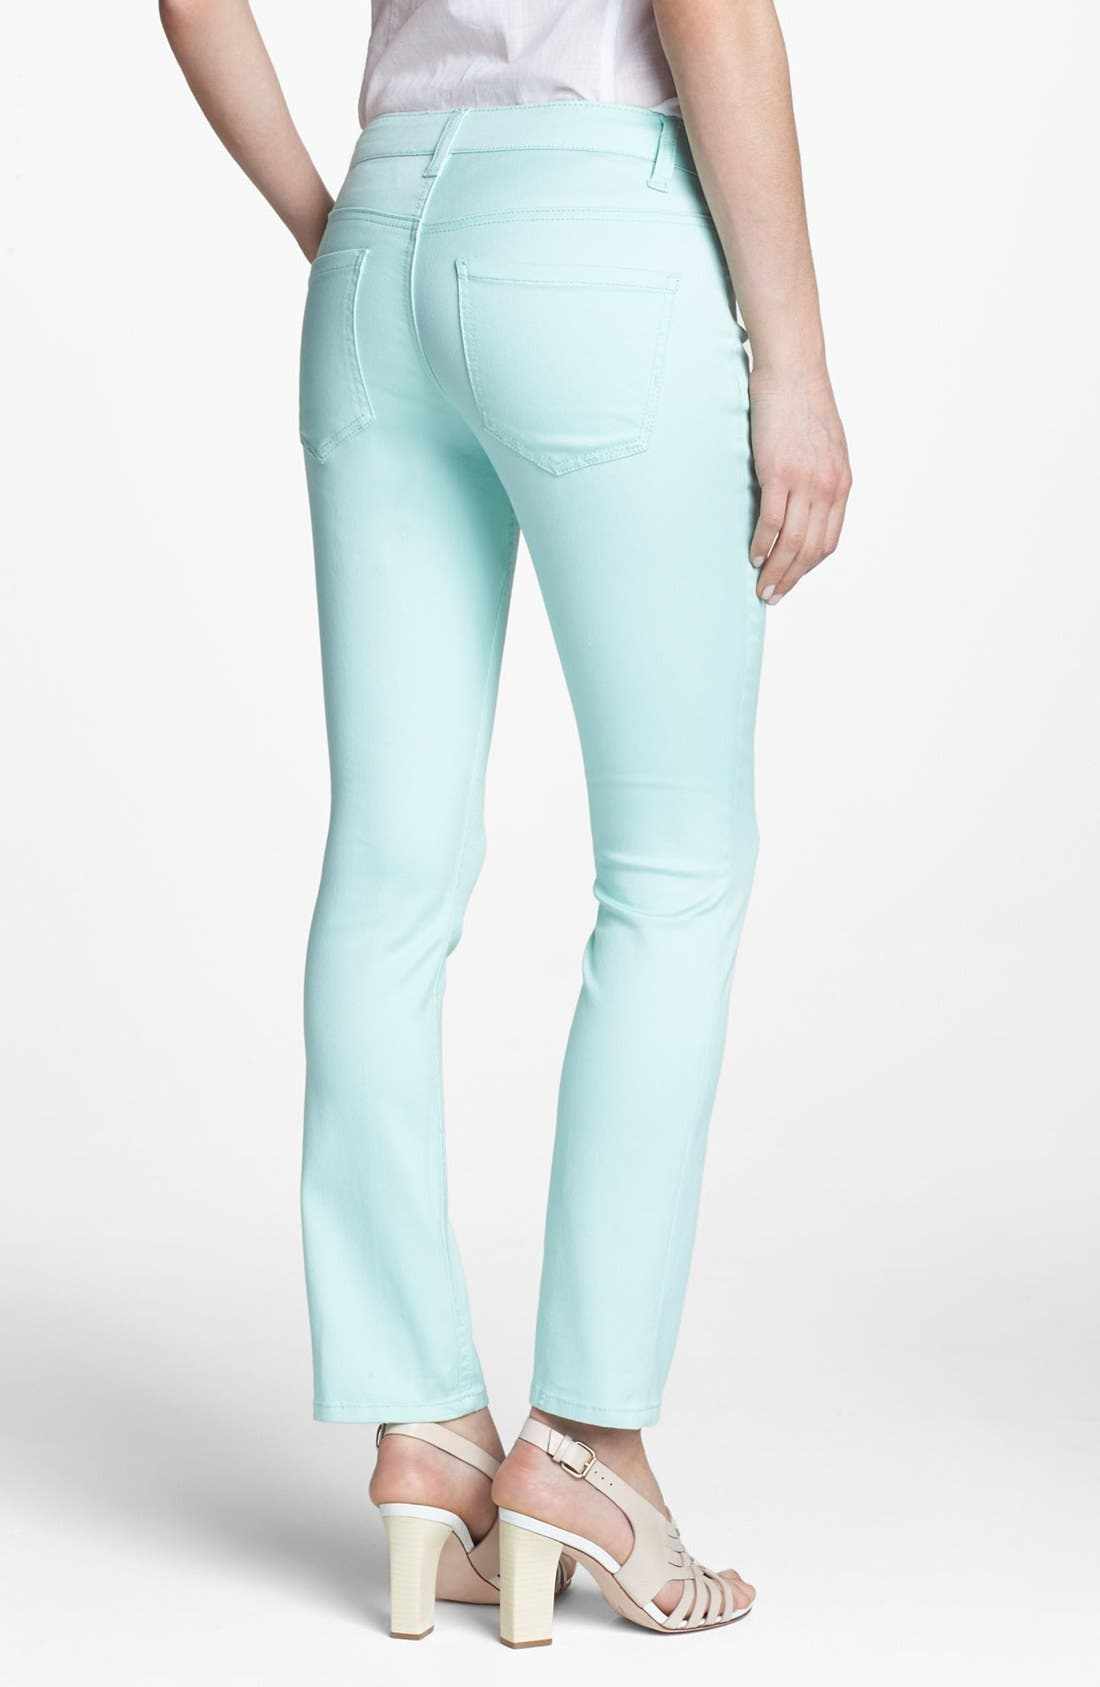 Alternate Image 2  - Liverpool Jeans Company 'Sadie' Colored Straight Leg Stretch Jeans (Petite) (Online Only)